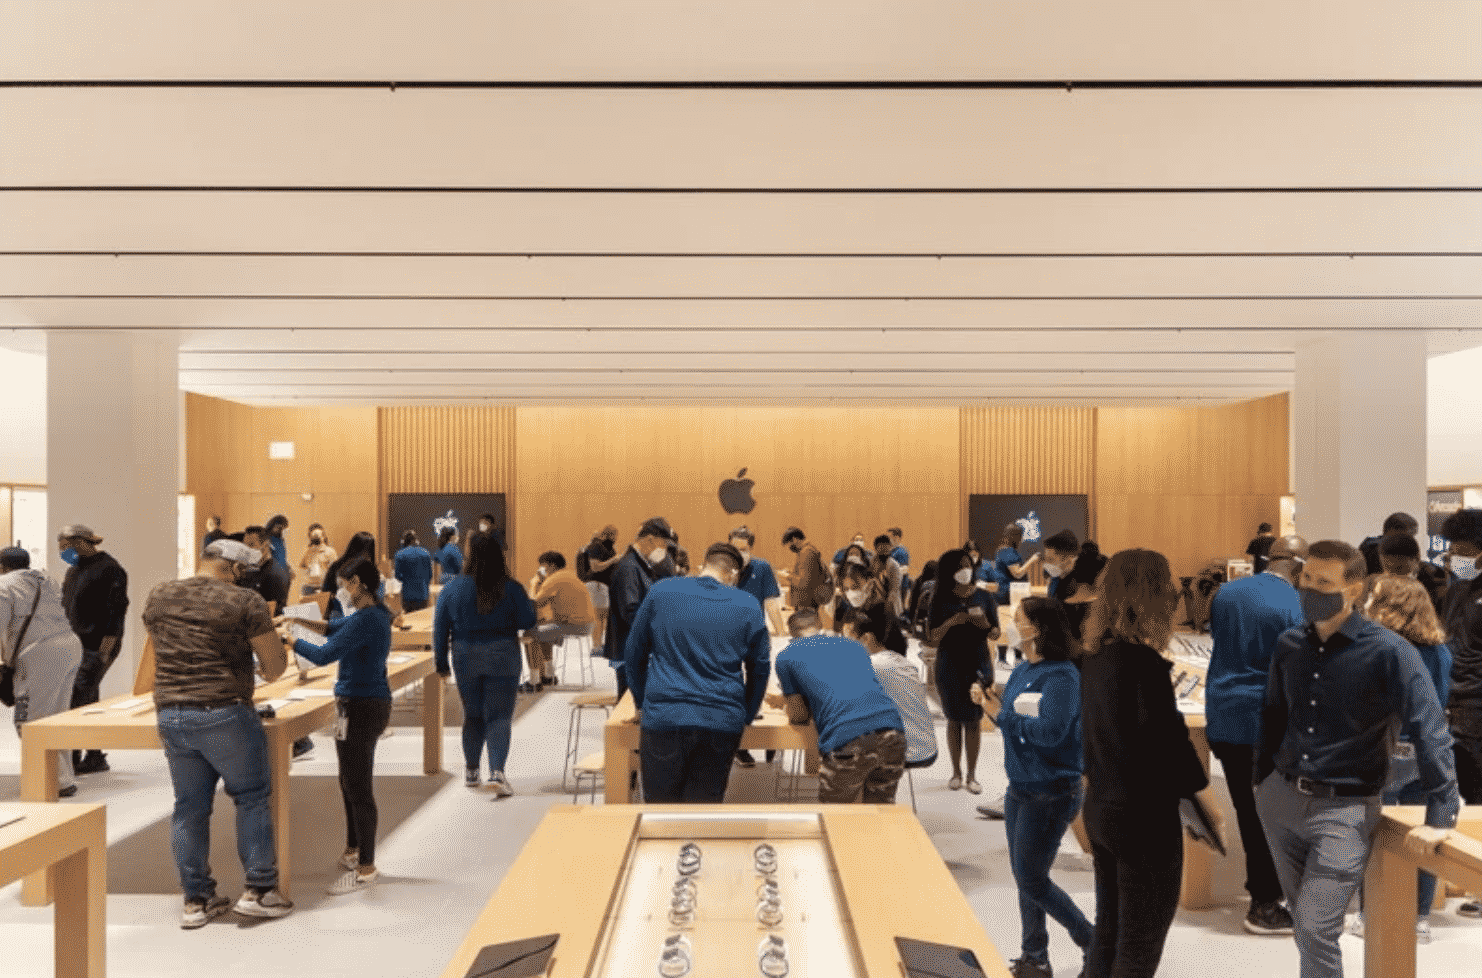 A Virtual tour of newly opened Apple the Mall at Bay Plaza is available